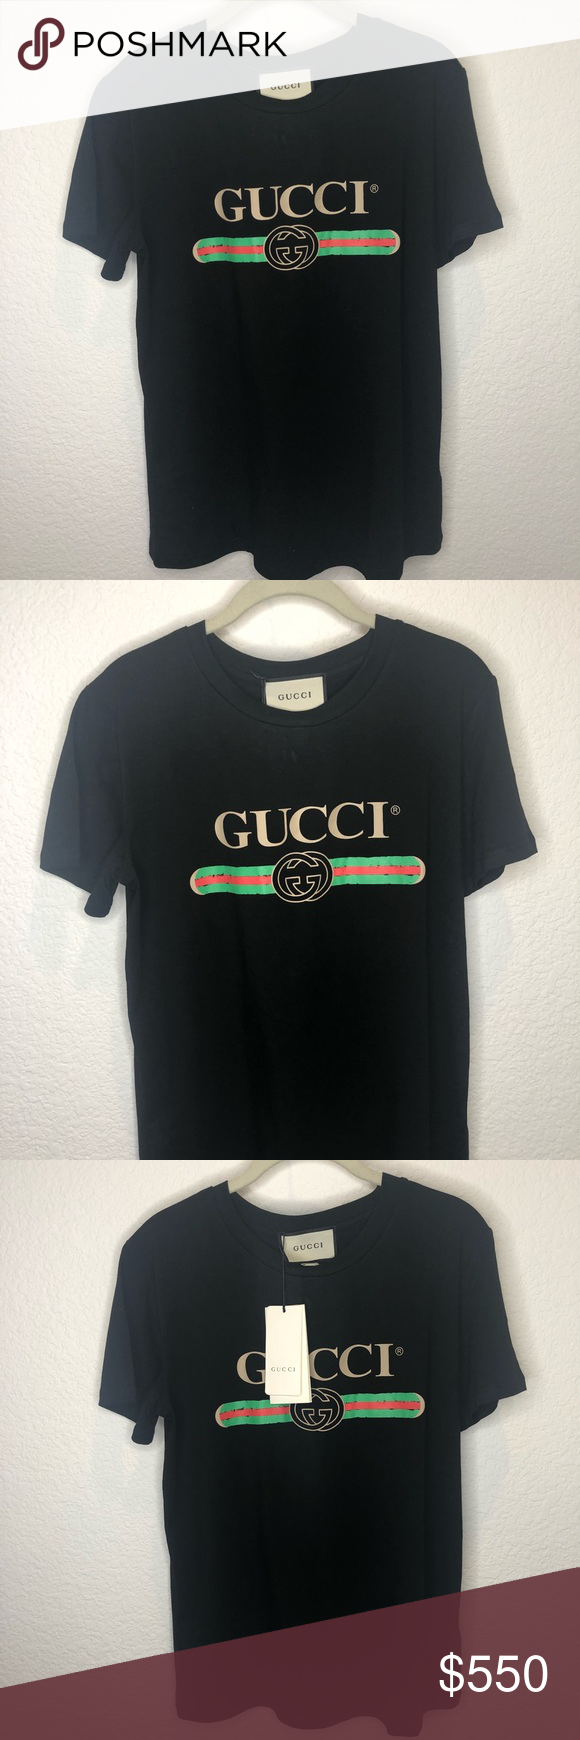 74572dab8 Gucci Distressed printed cotton-jersey T-shirt Size large. Never worn.  Perfect condition. Gucci Tops Tees - Short Sleeve